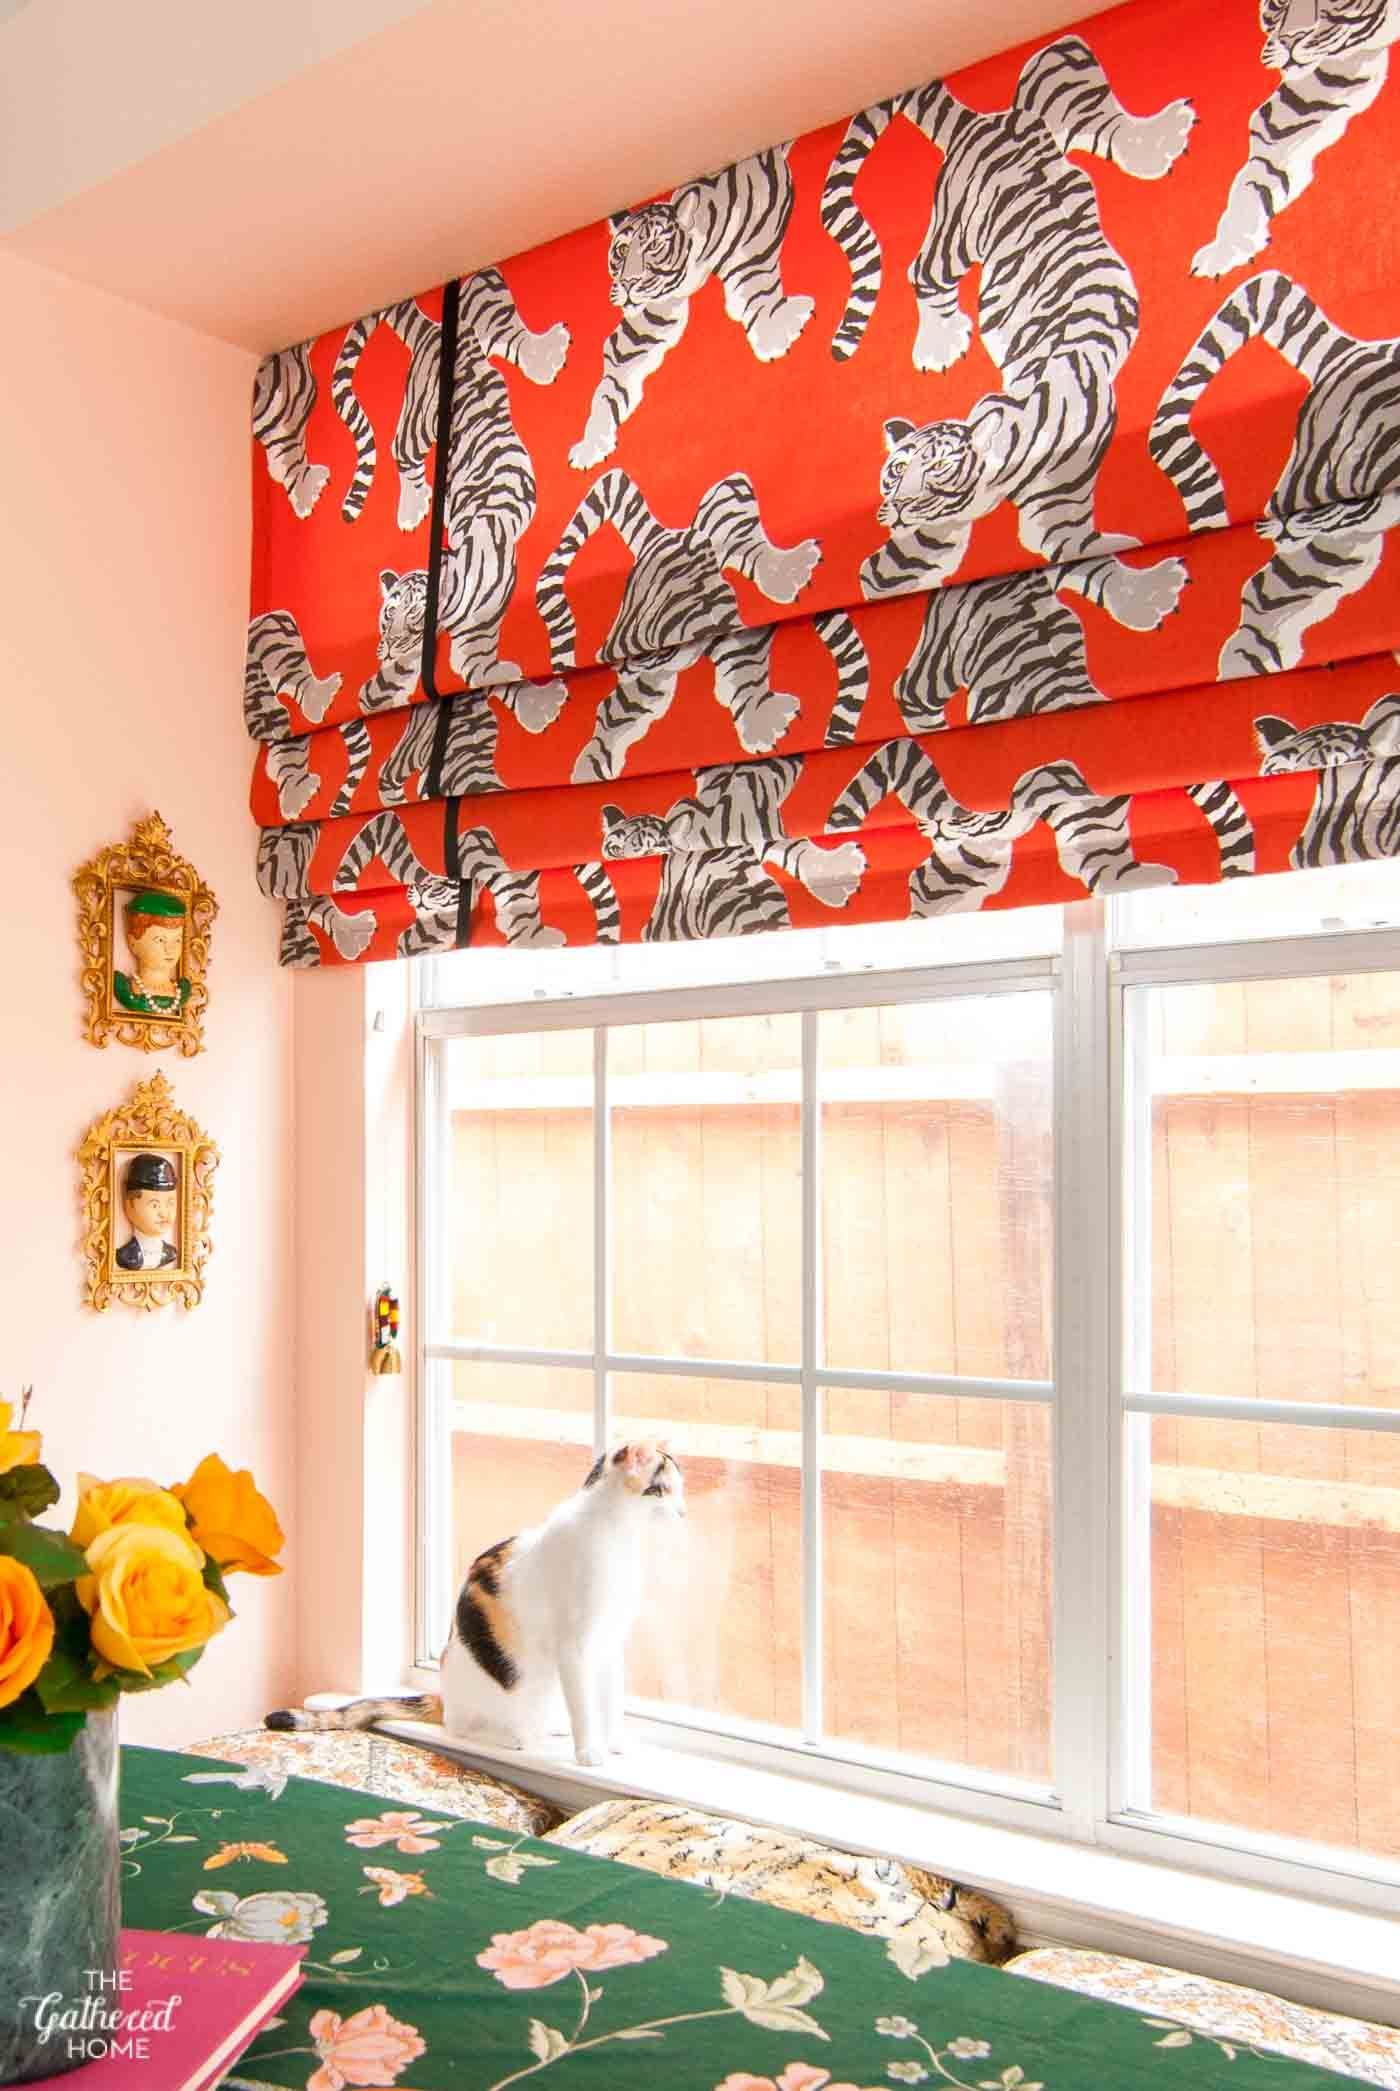 DIY faux Roman shade in a kitchen window seat - The Gathered Home